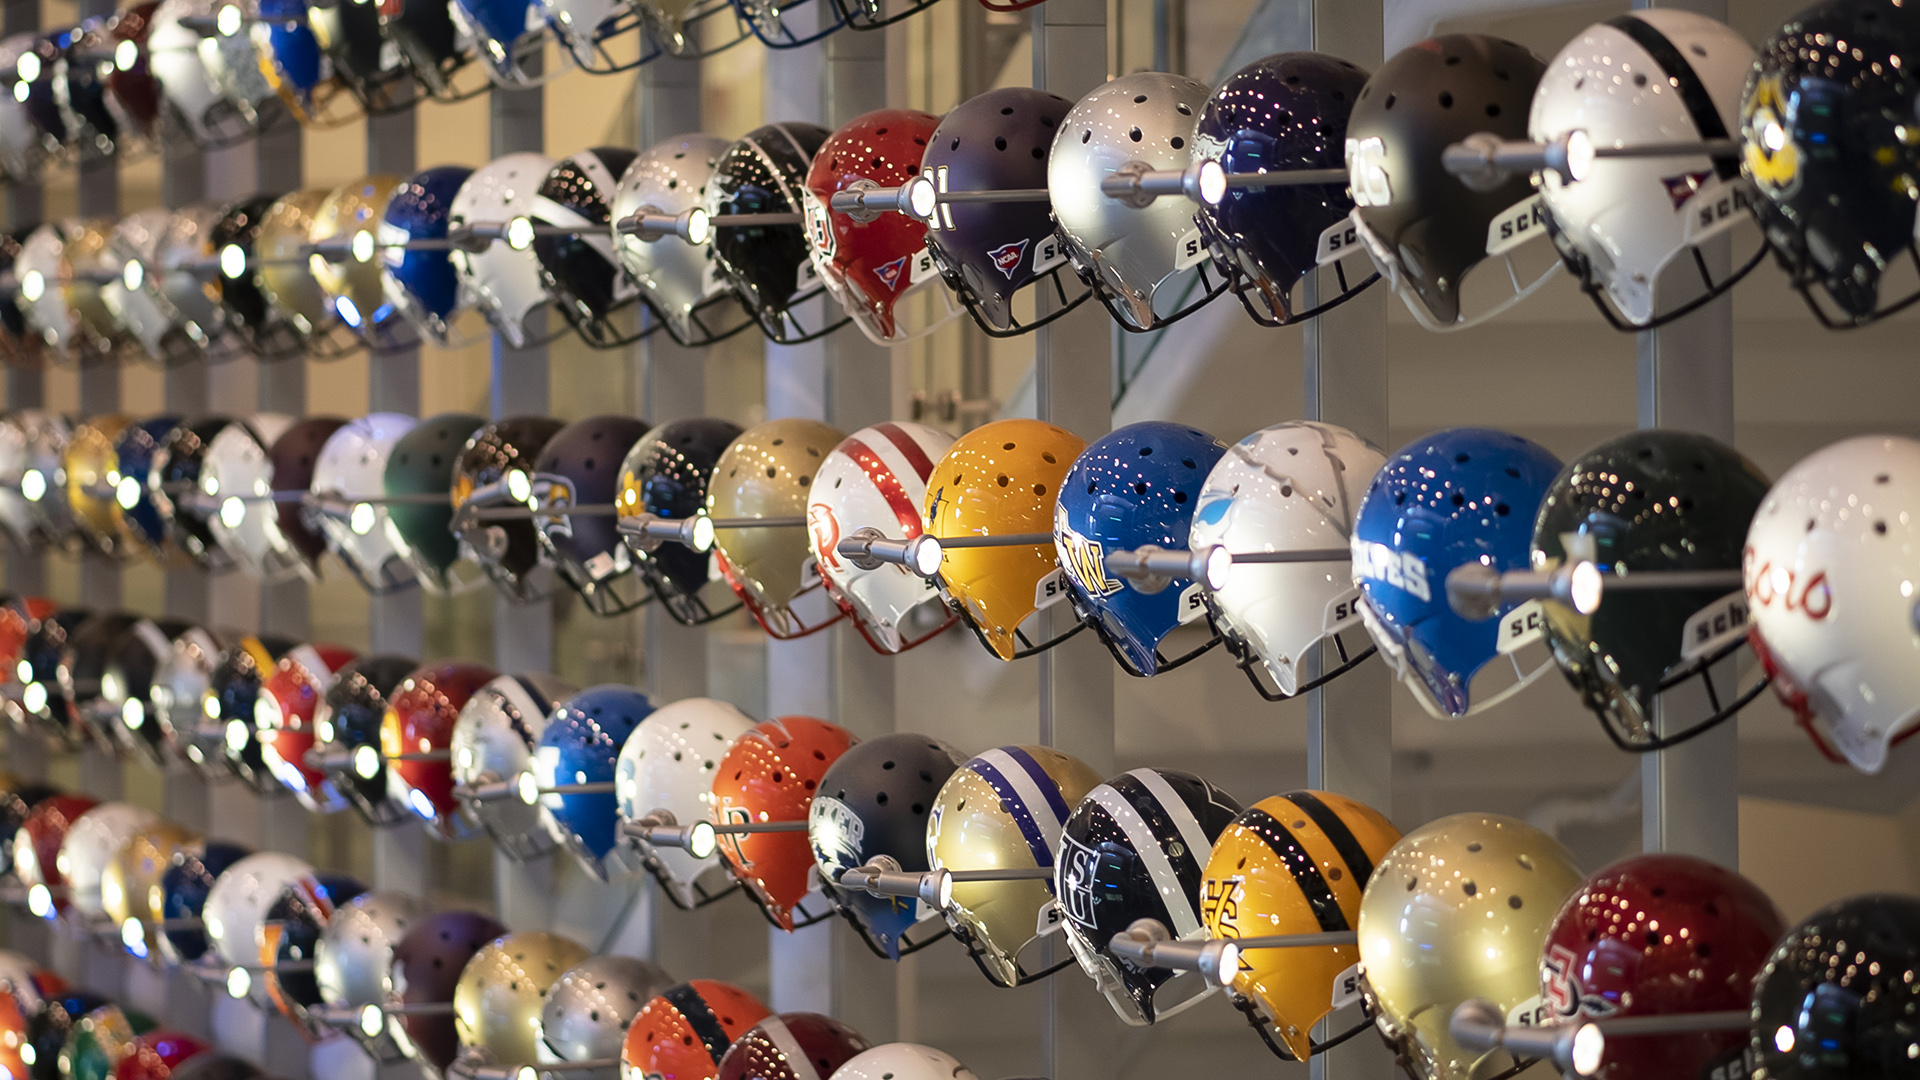 775 Colleges and Universities Now Offering Football